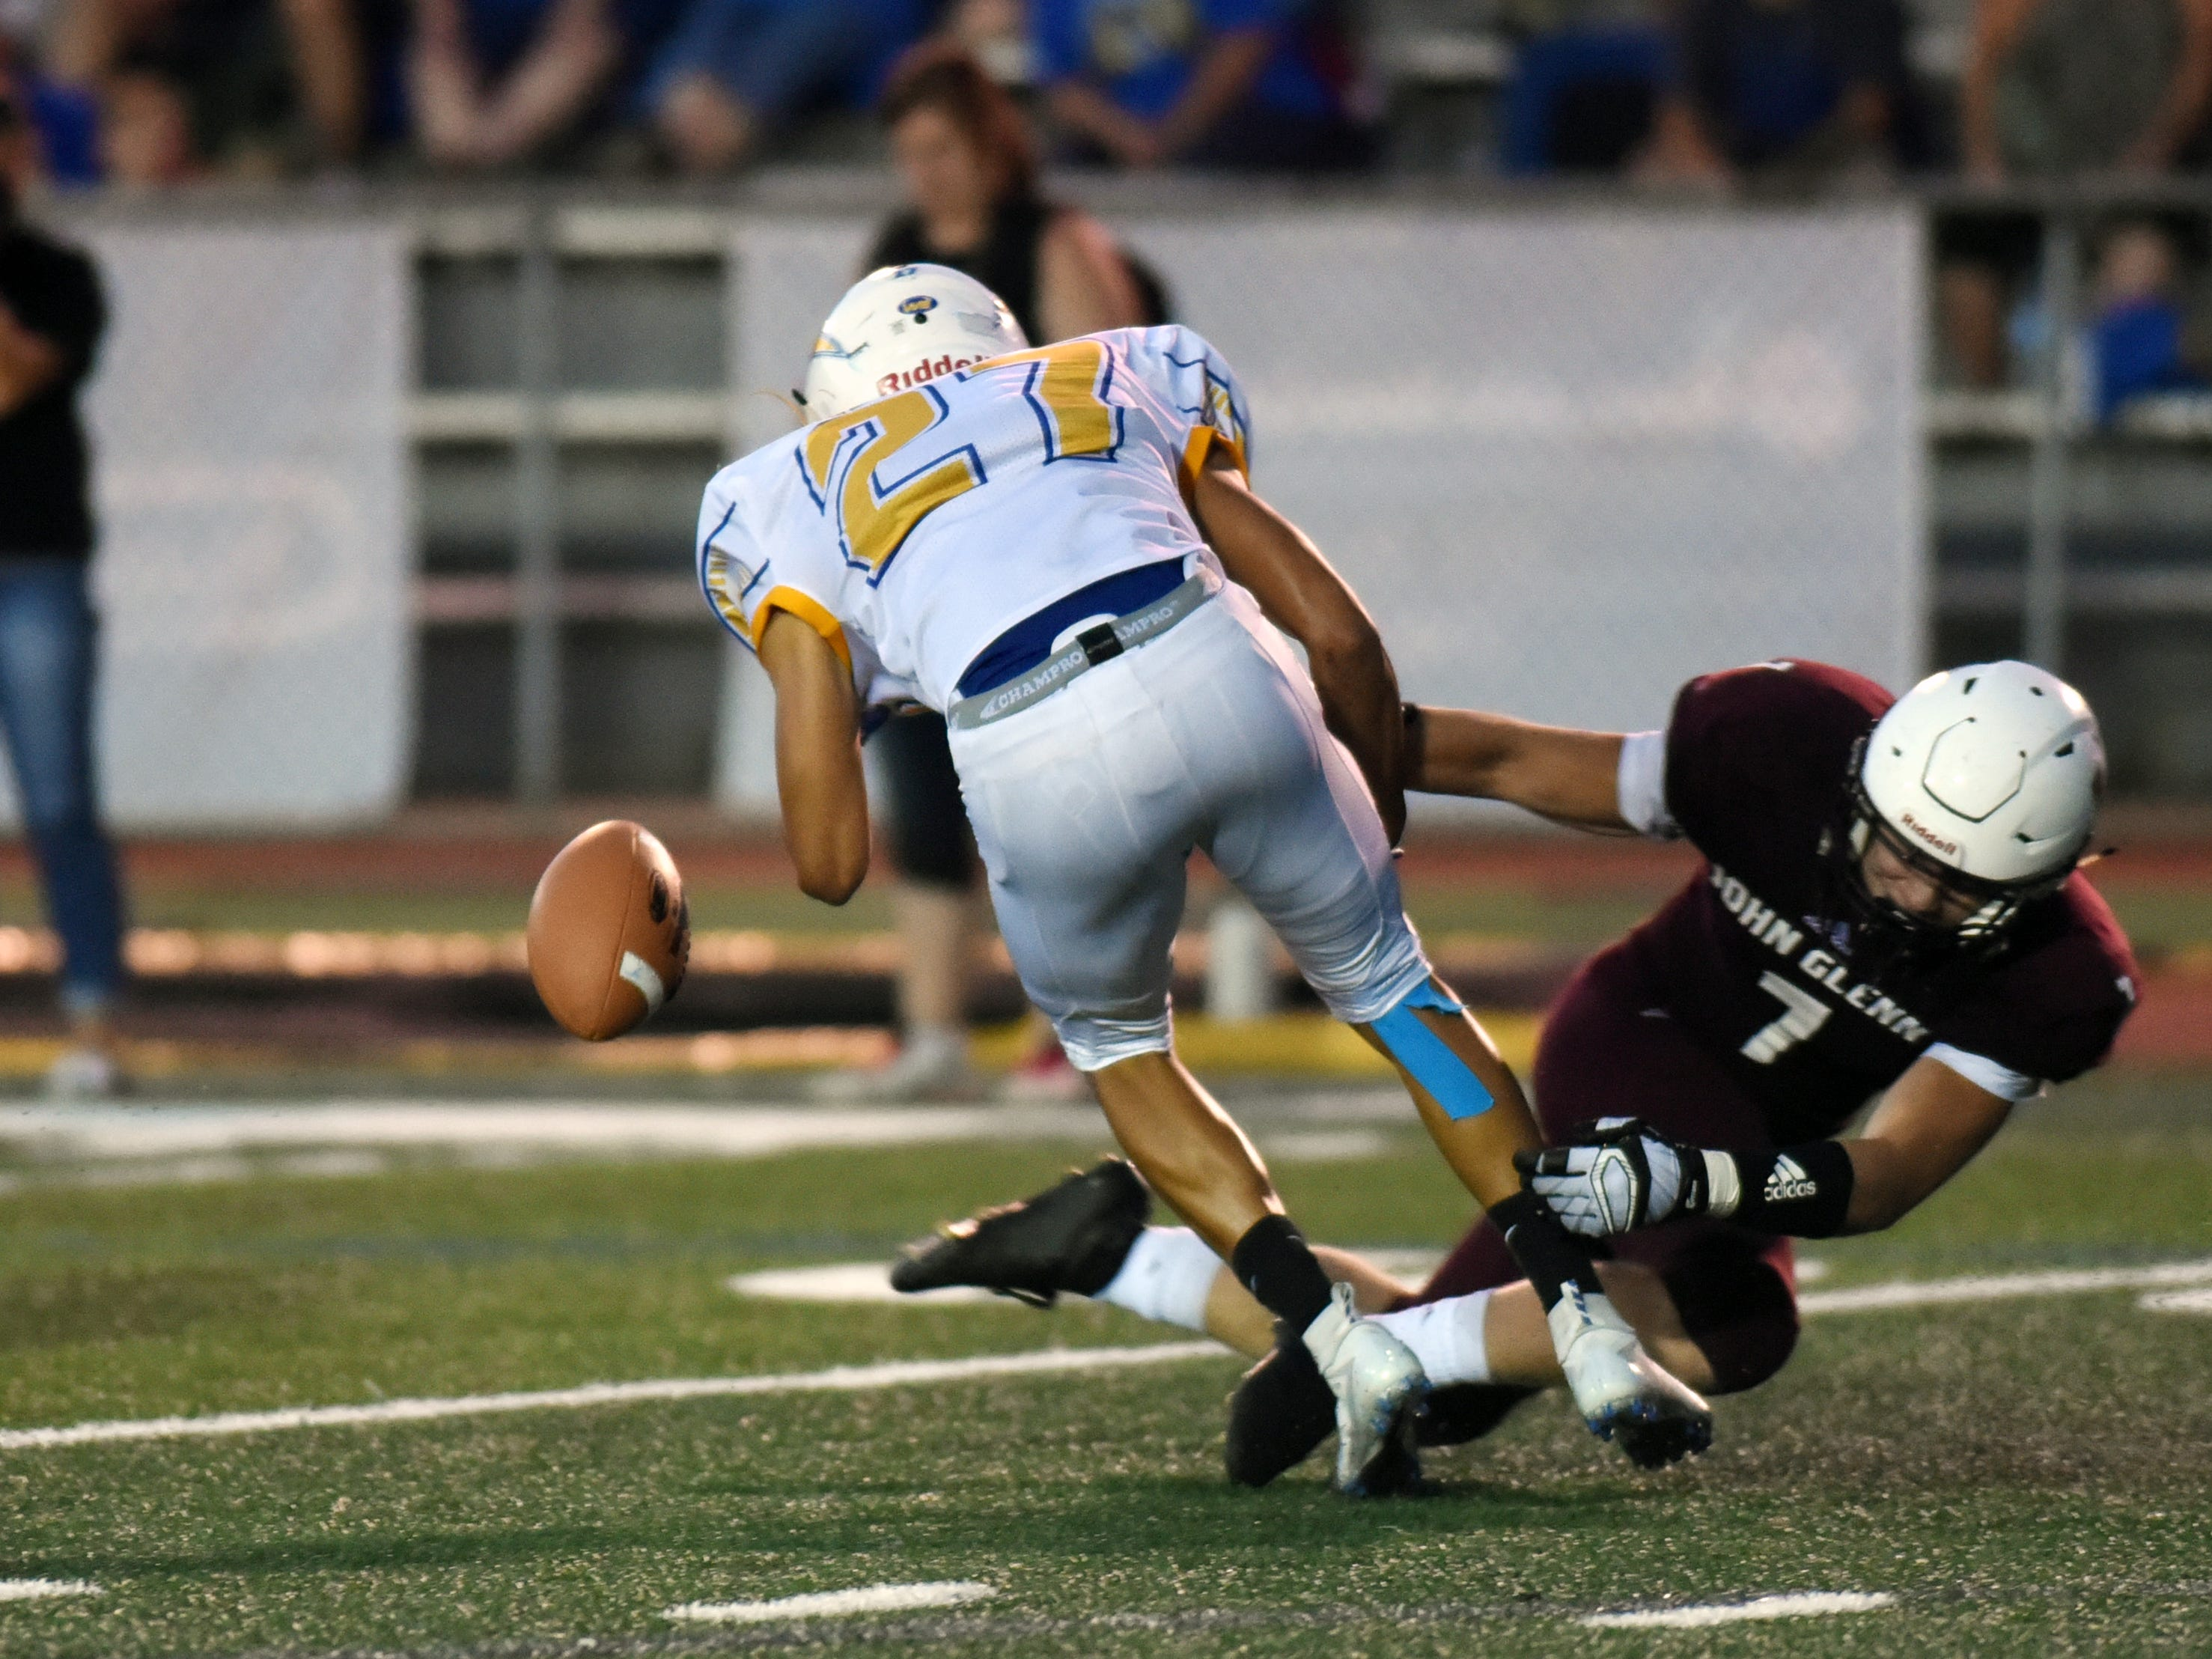 John Glenn's Score Perkins forces a fumble during the second half against Philo.